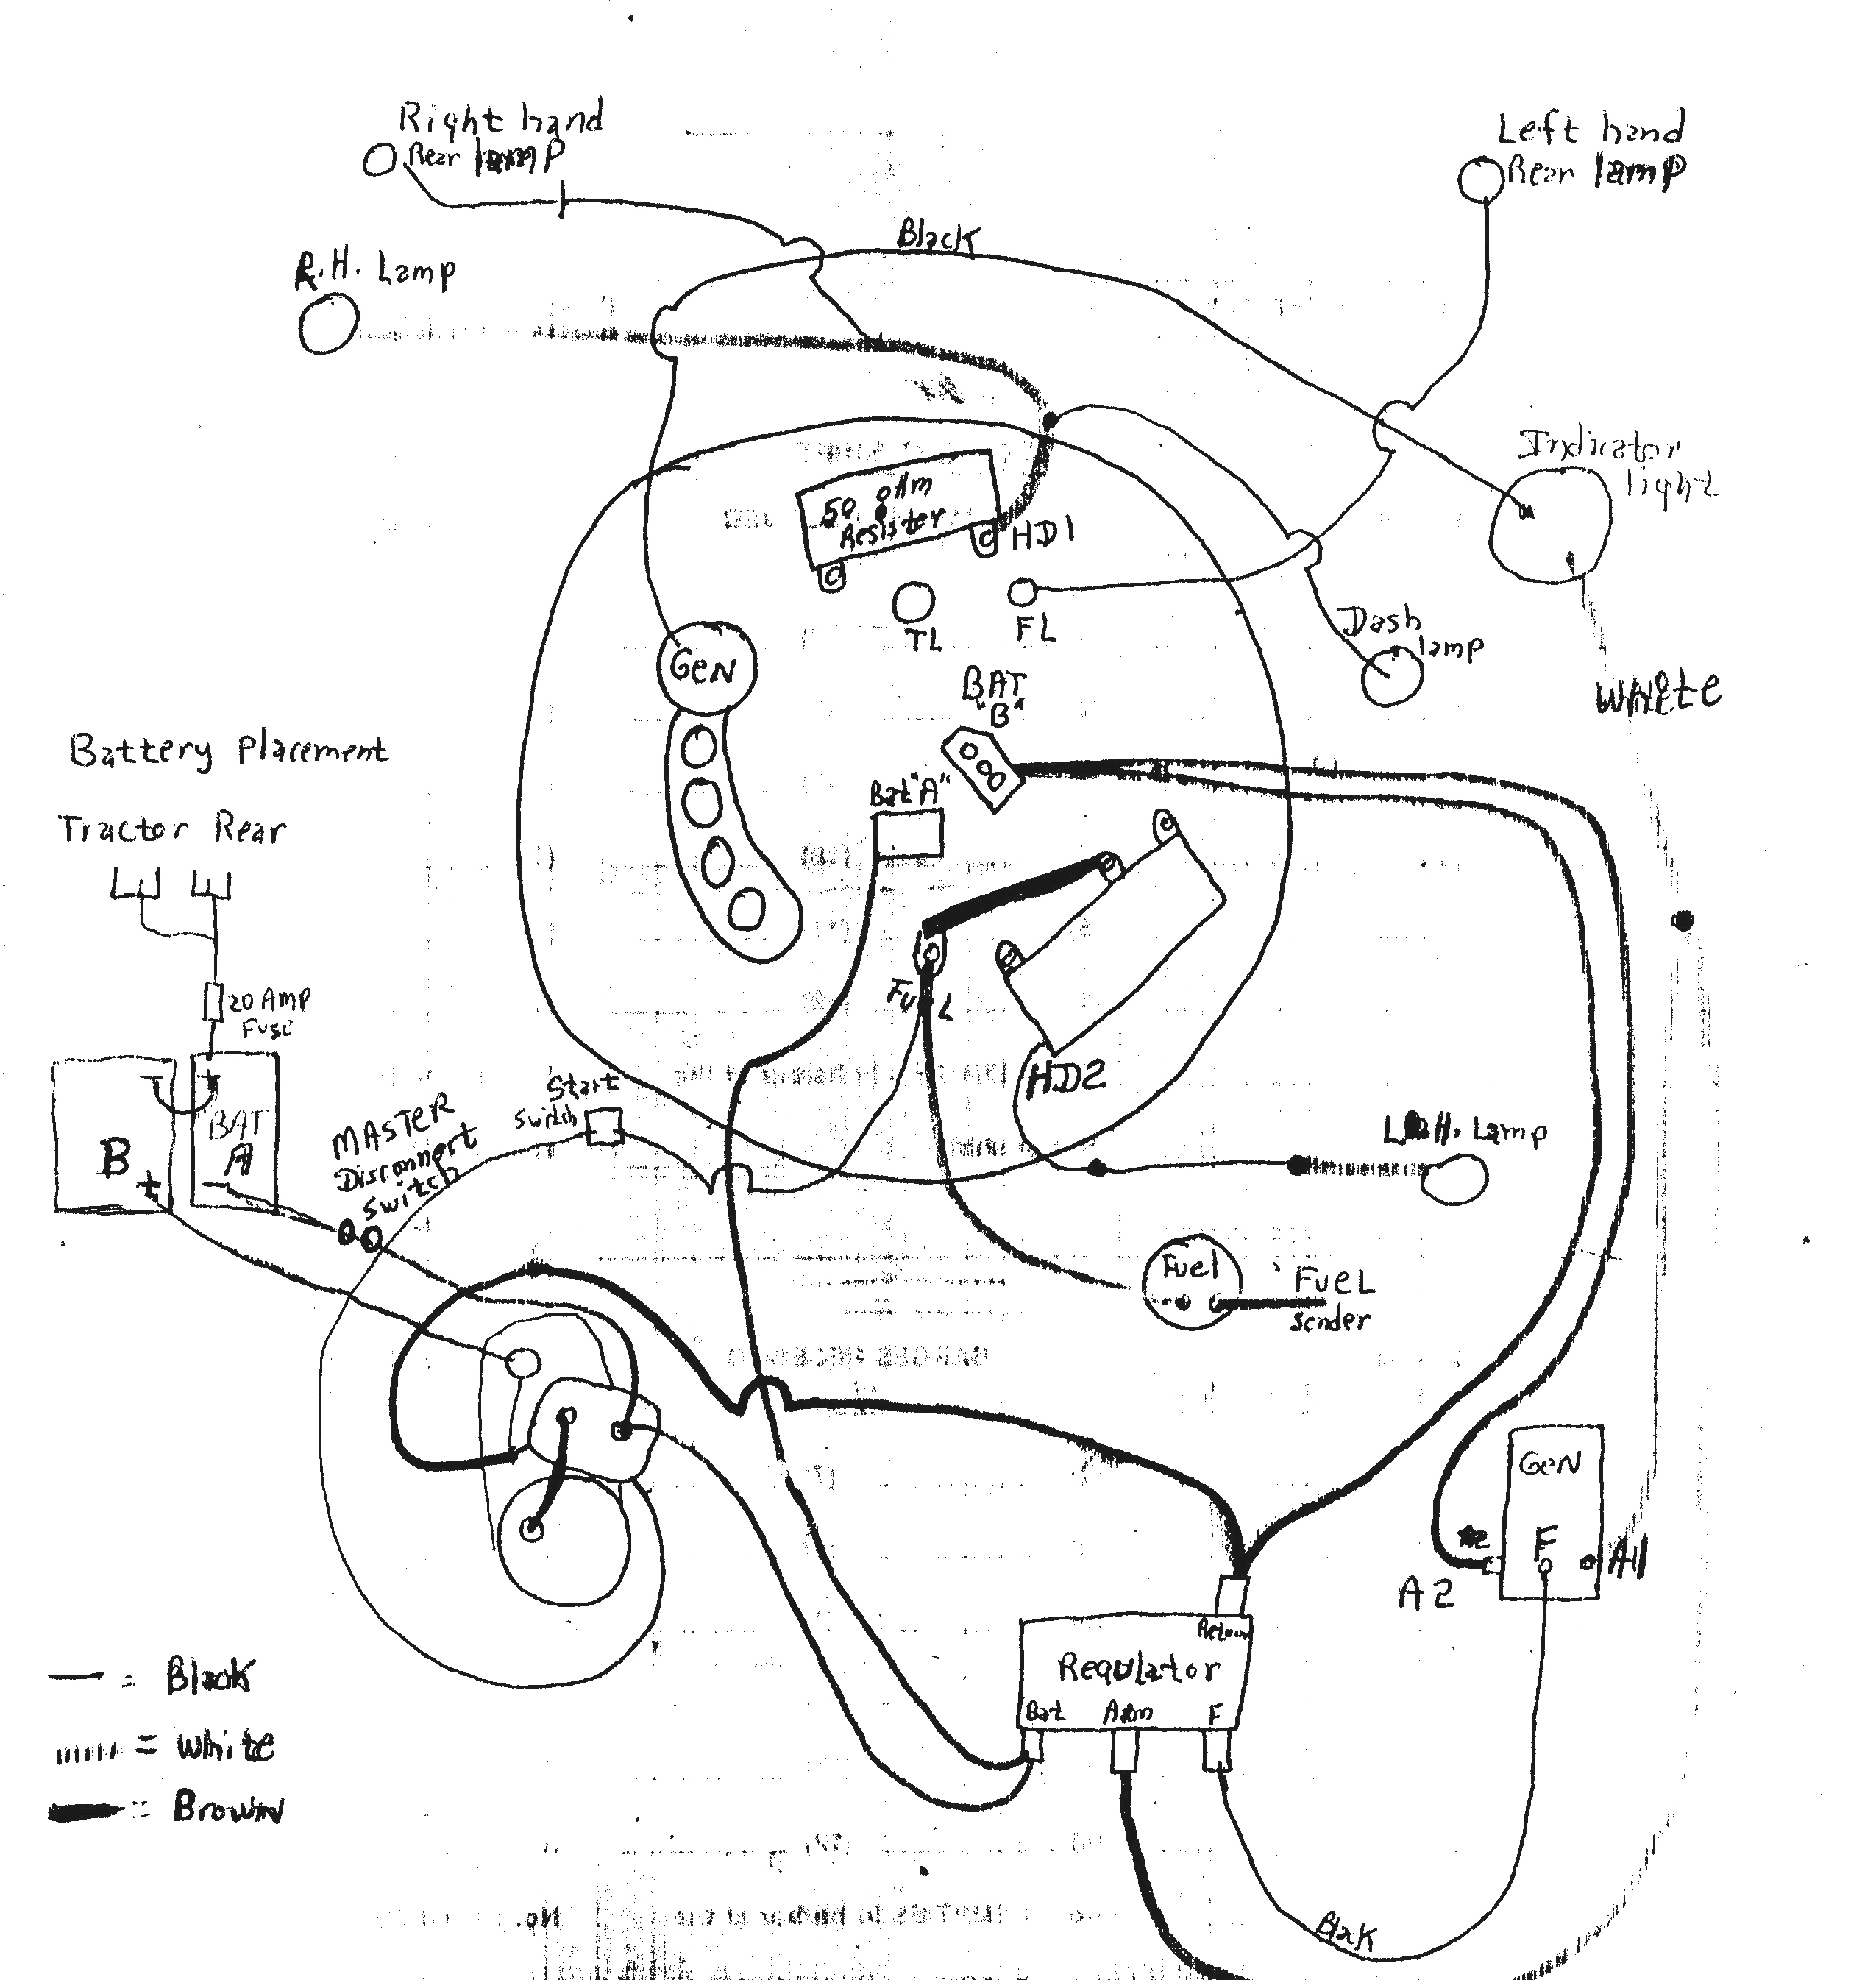 The John Deere 24 Volt Electrical System Explained Single Post Starter Solenoid Wiring Diagram